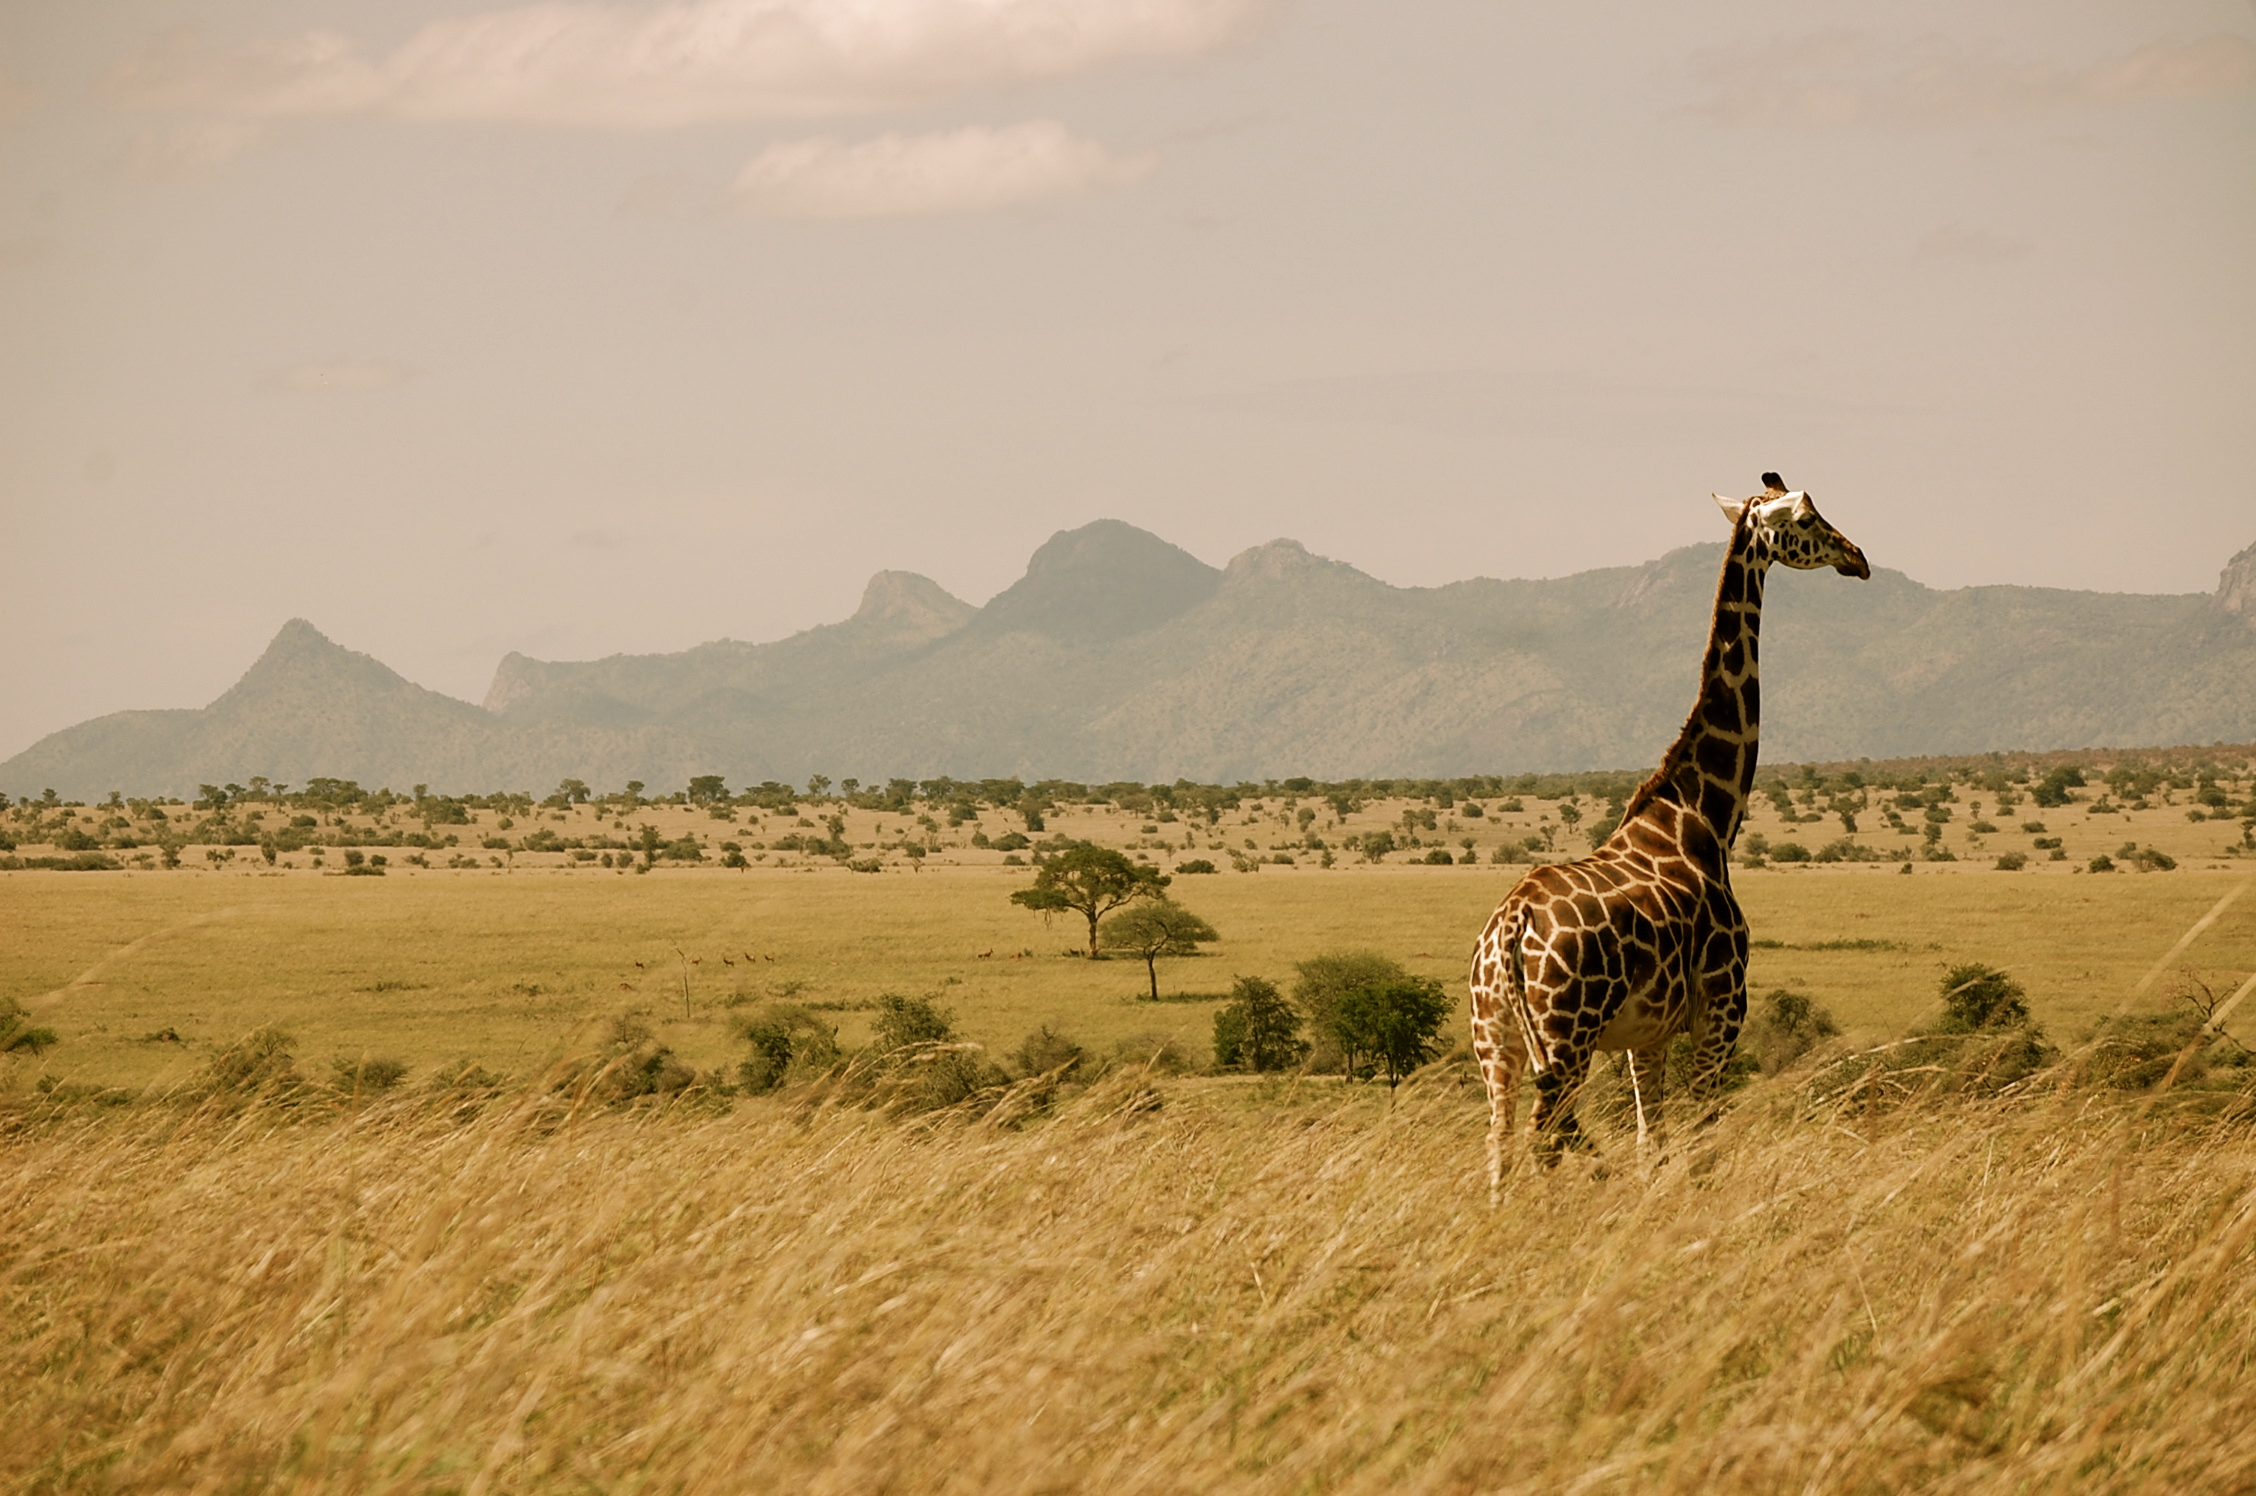 The disappearing of the savana, a photo from Rift Valley, West ...